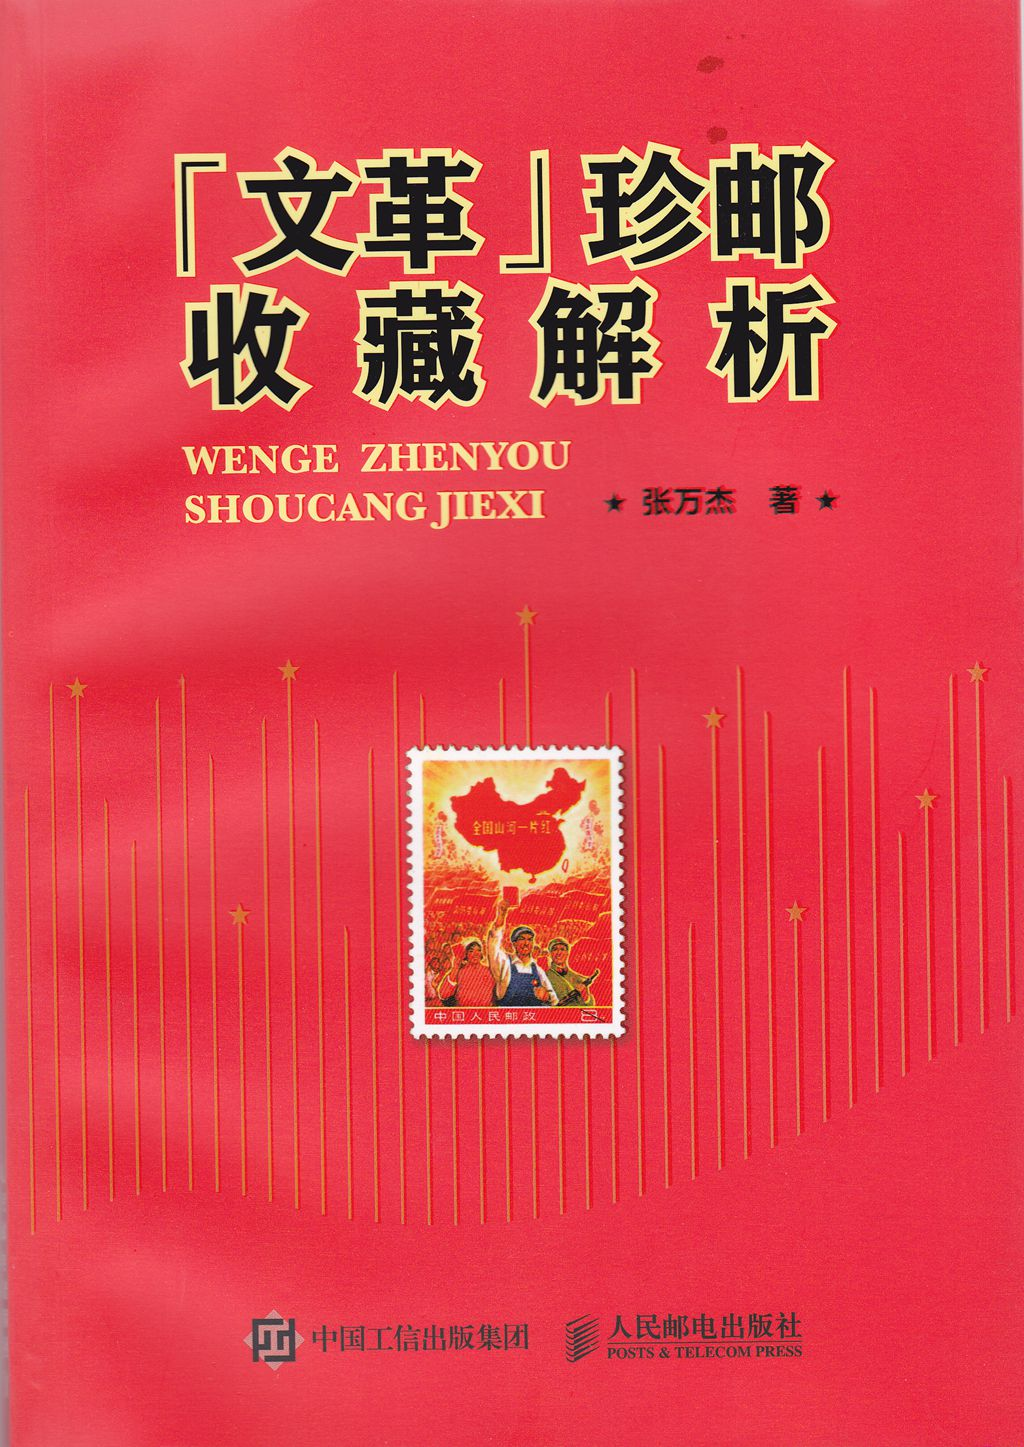 F2274, Stamp Catalog of China Cultural Revolution Period (1967-1970)